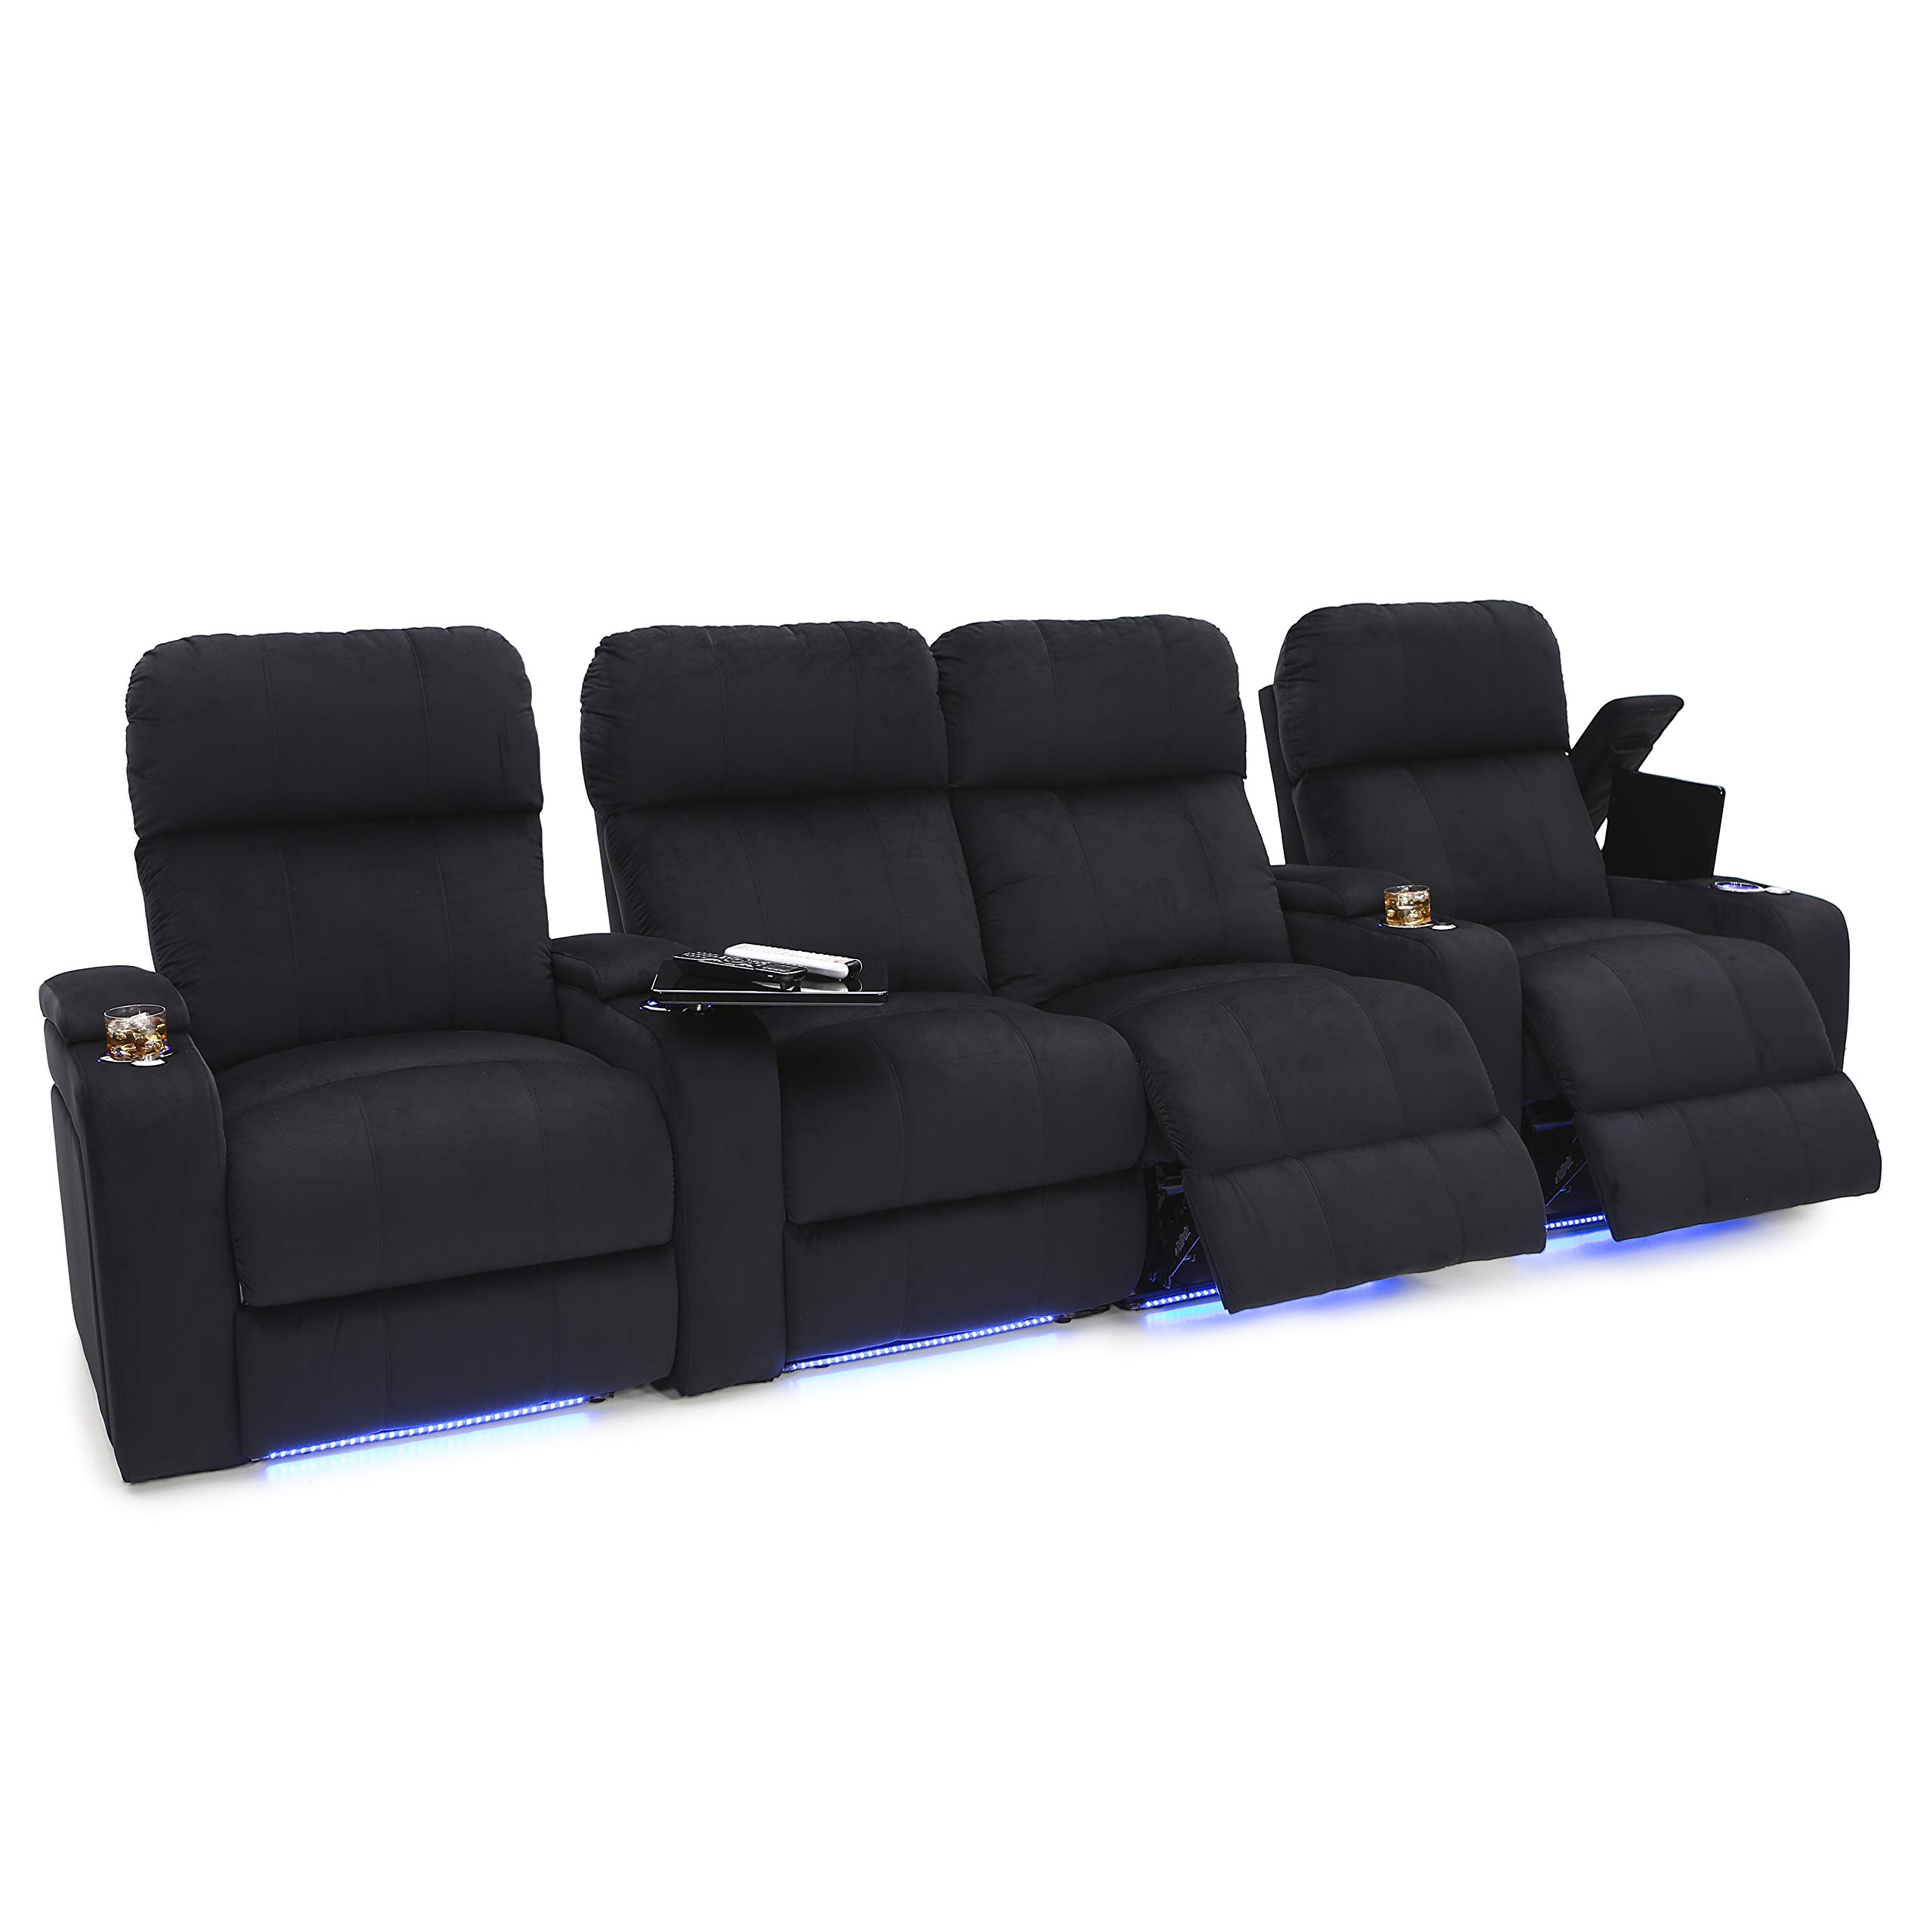 Seatcraft Bonita Home Theater Seating Bella Fabric Power Recline with Powered Headrest, in-Arm Storage, USB Charging, Tray Tables, Lighted Cup Holders and Base, Row of 4 Middle Loveseat, Black by Seatcraft